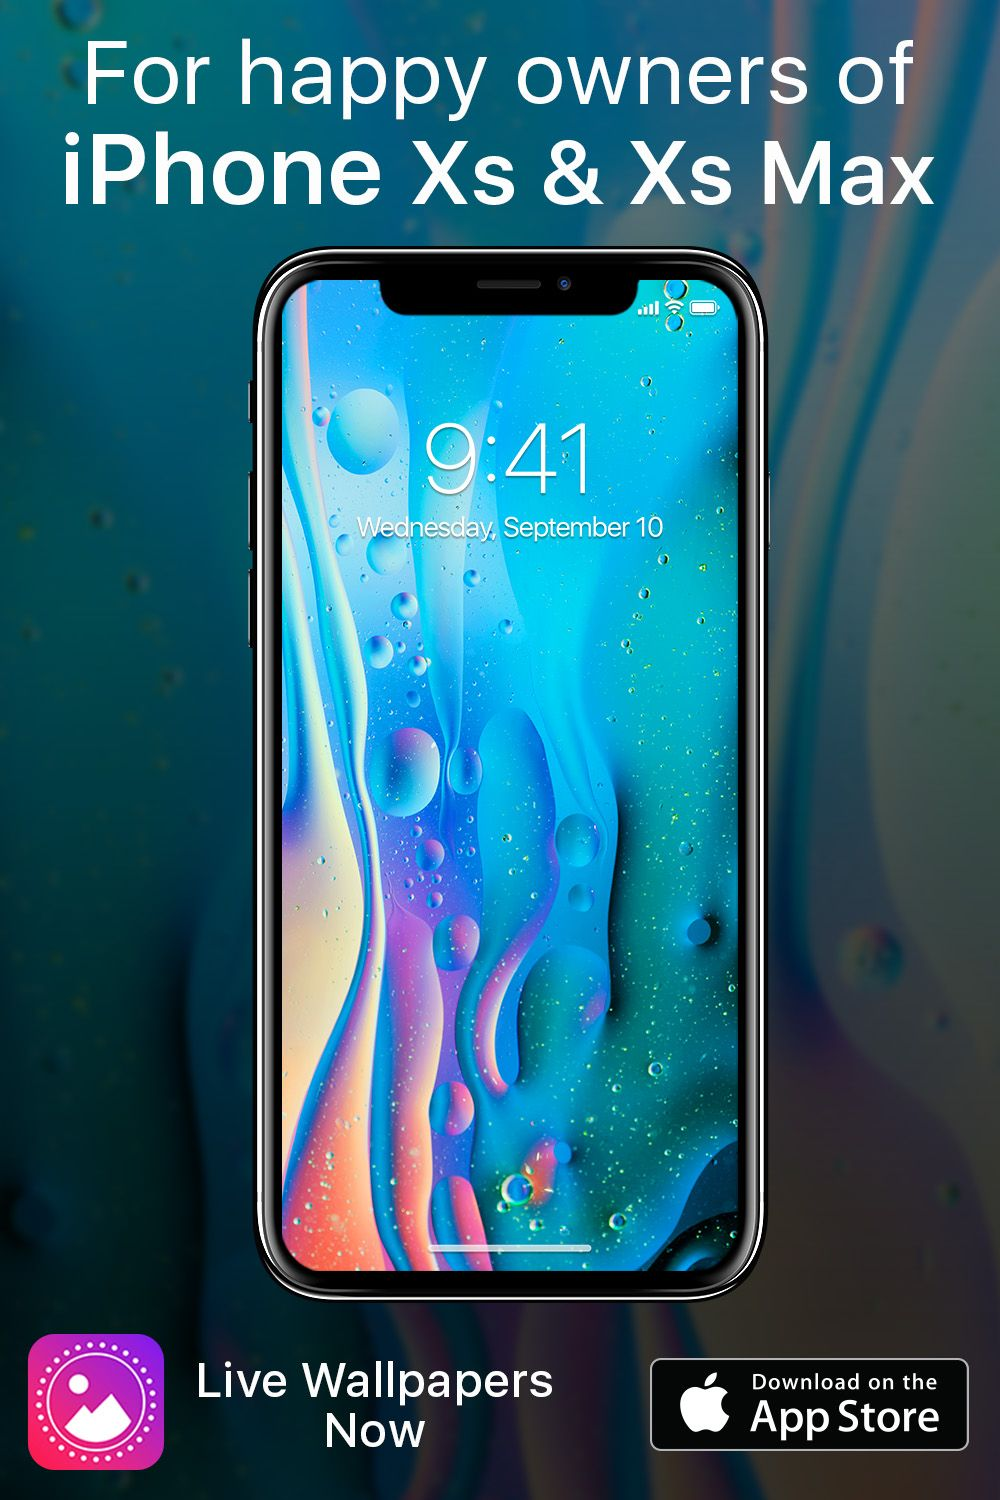 High Quality Live Wallpapers For Iphone Xs And Iphone Xs Max Live